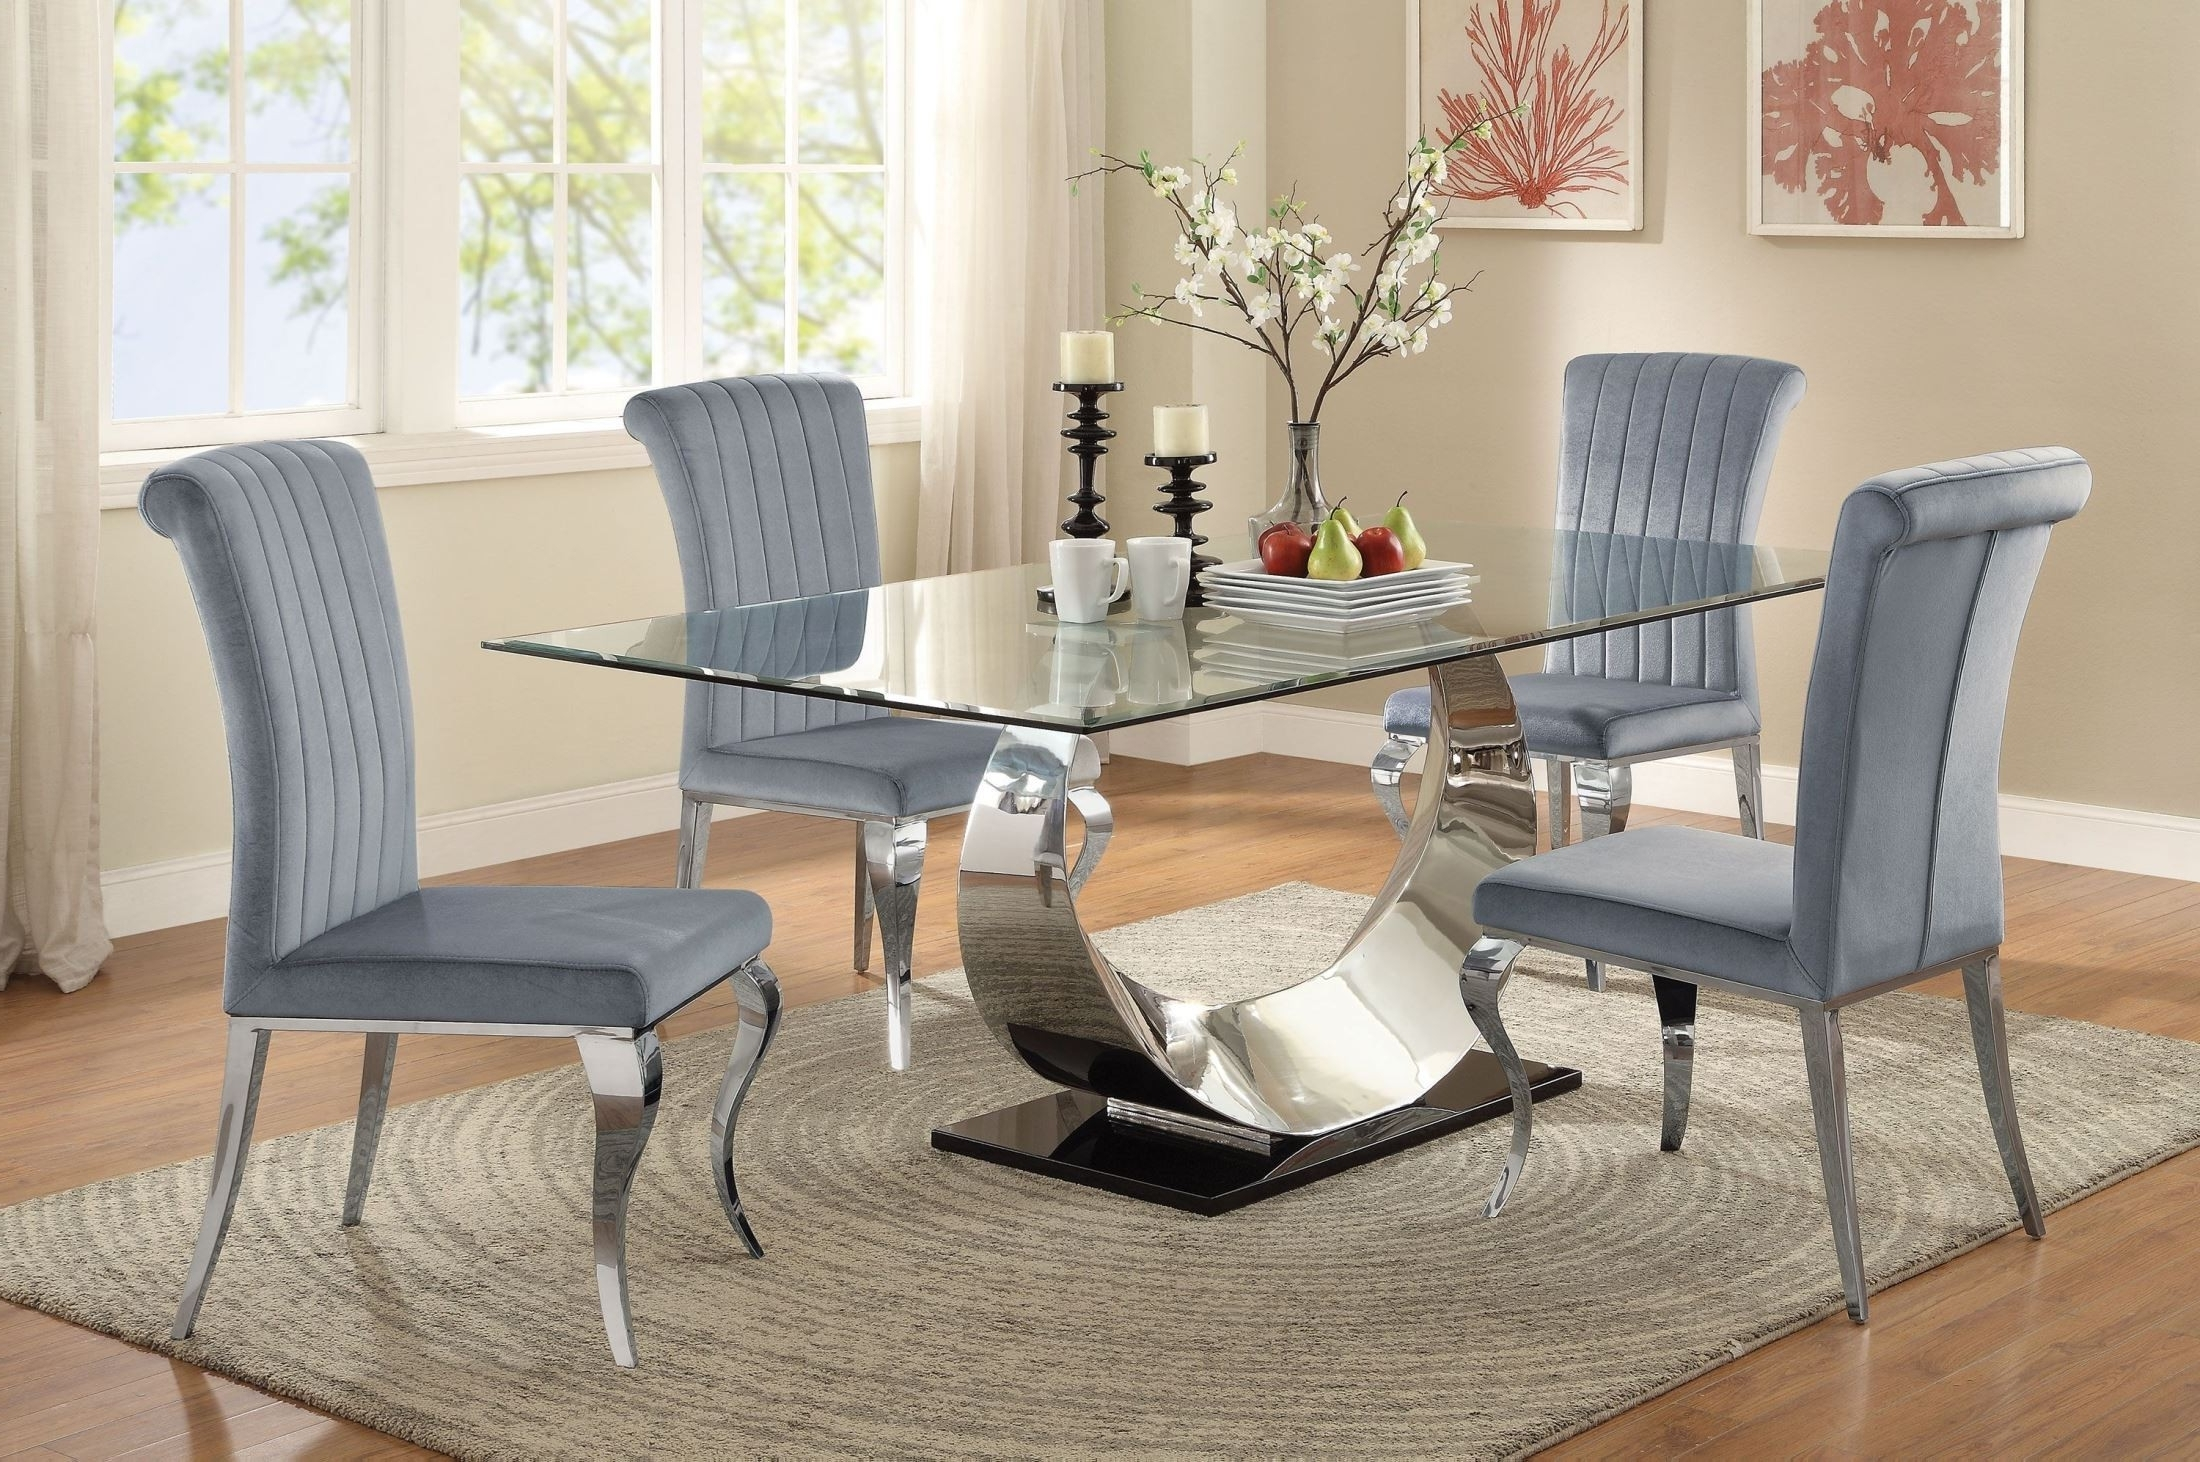 Chrome Dining Room Sets With Current Coaster Manessier Chrome Dining Room Set – Manessier Collection:  (View 6 of 25)